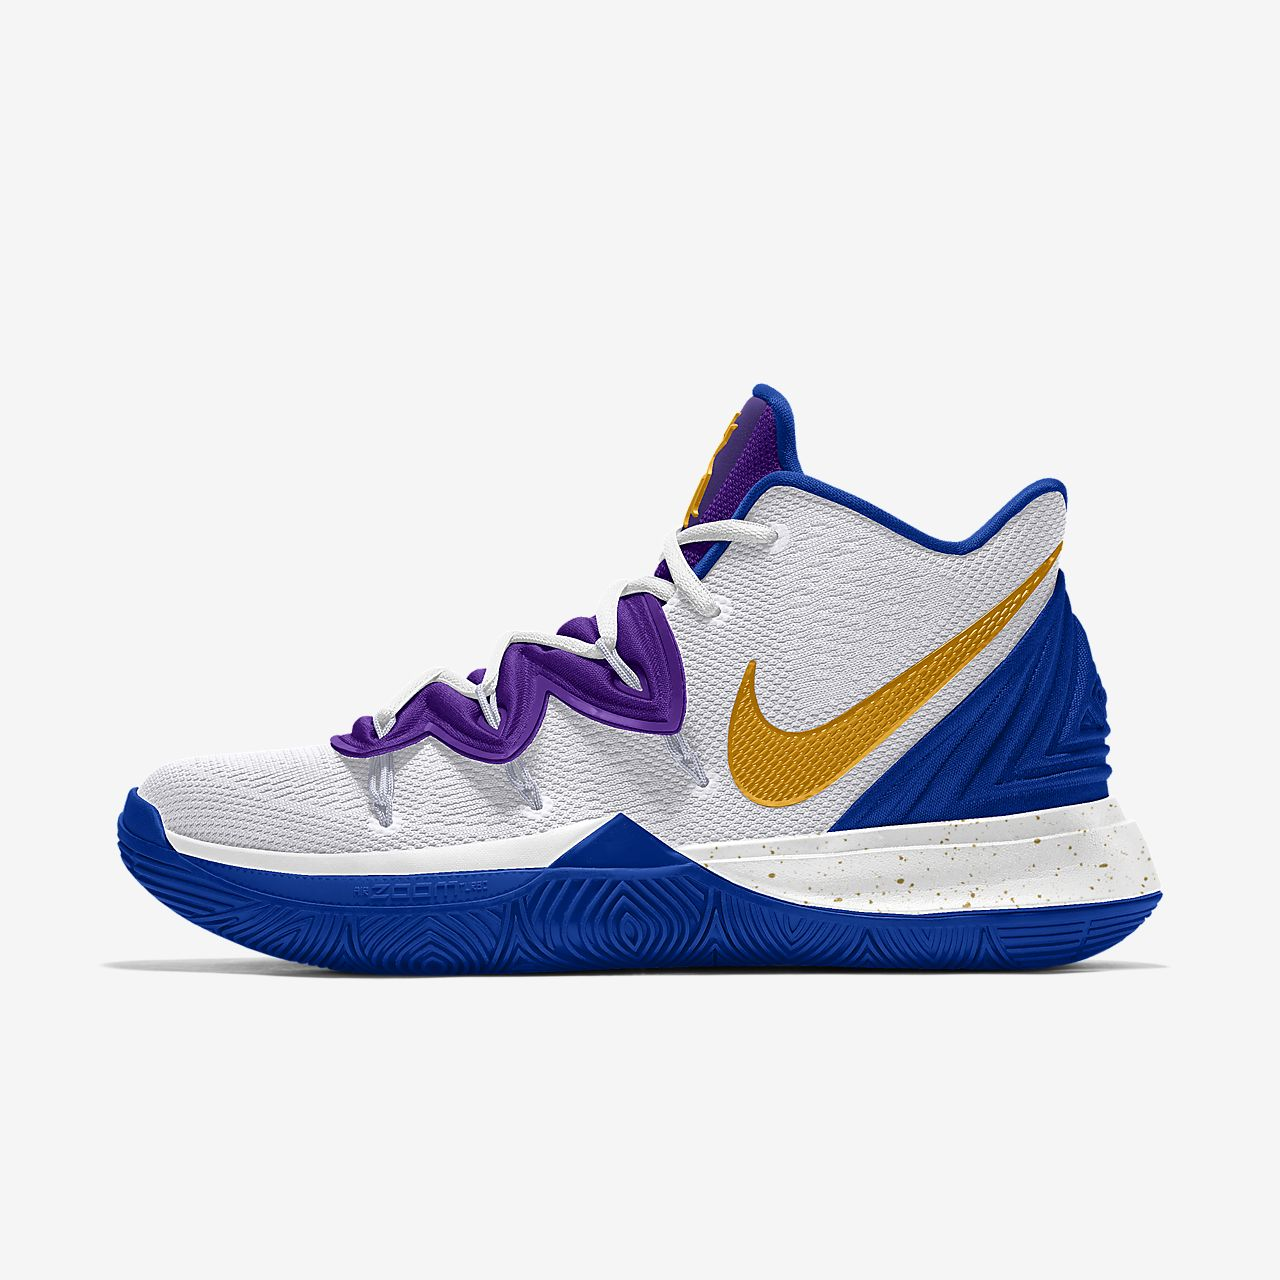 Scarpa da basket personalizzabile Kyrie 5 By You